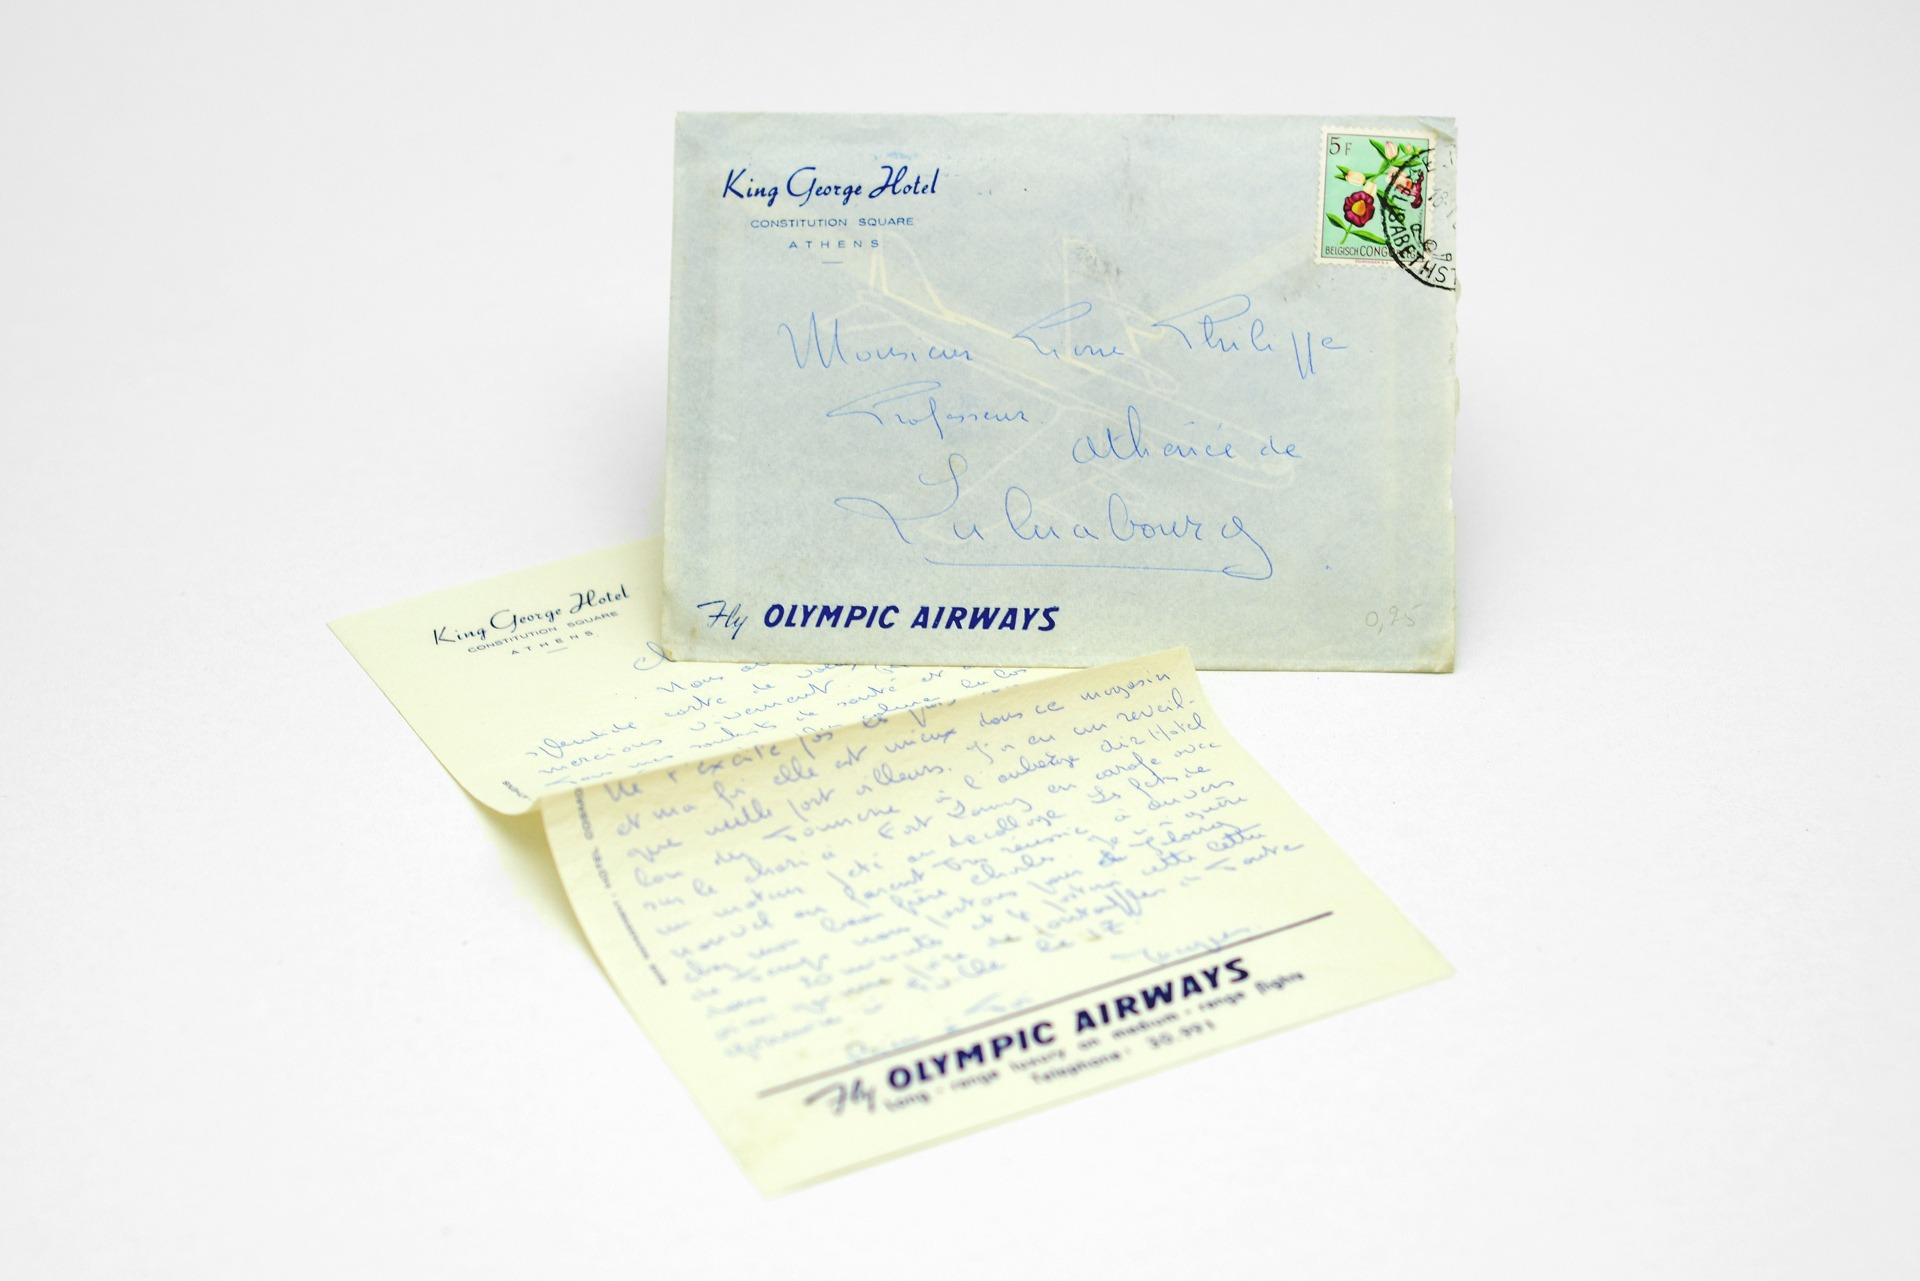 1950s King George Hotel handwritten envelope & letter featuring Olympic Airways logo